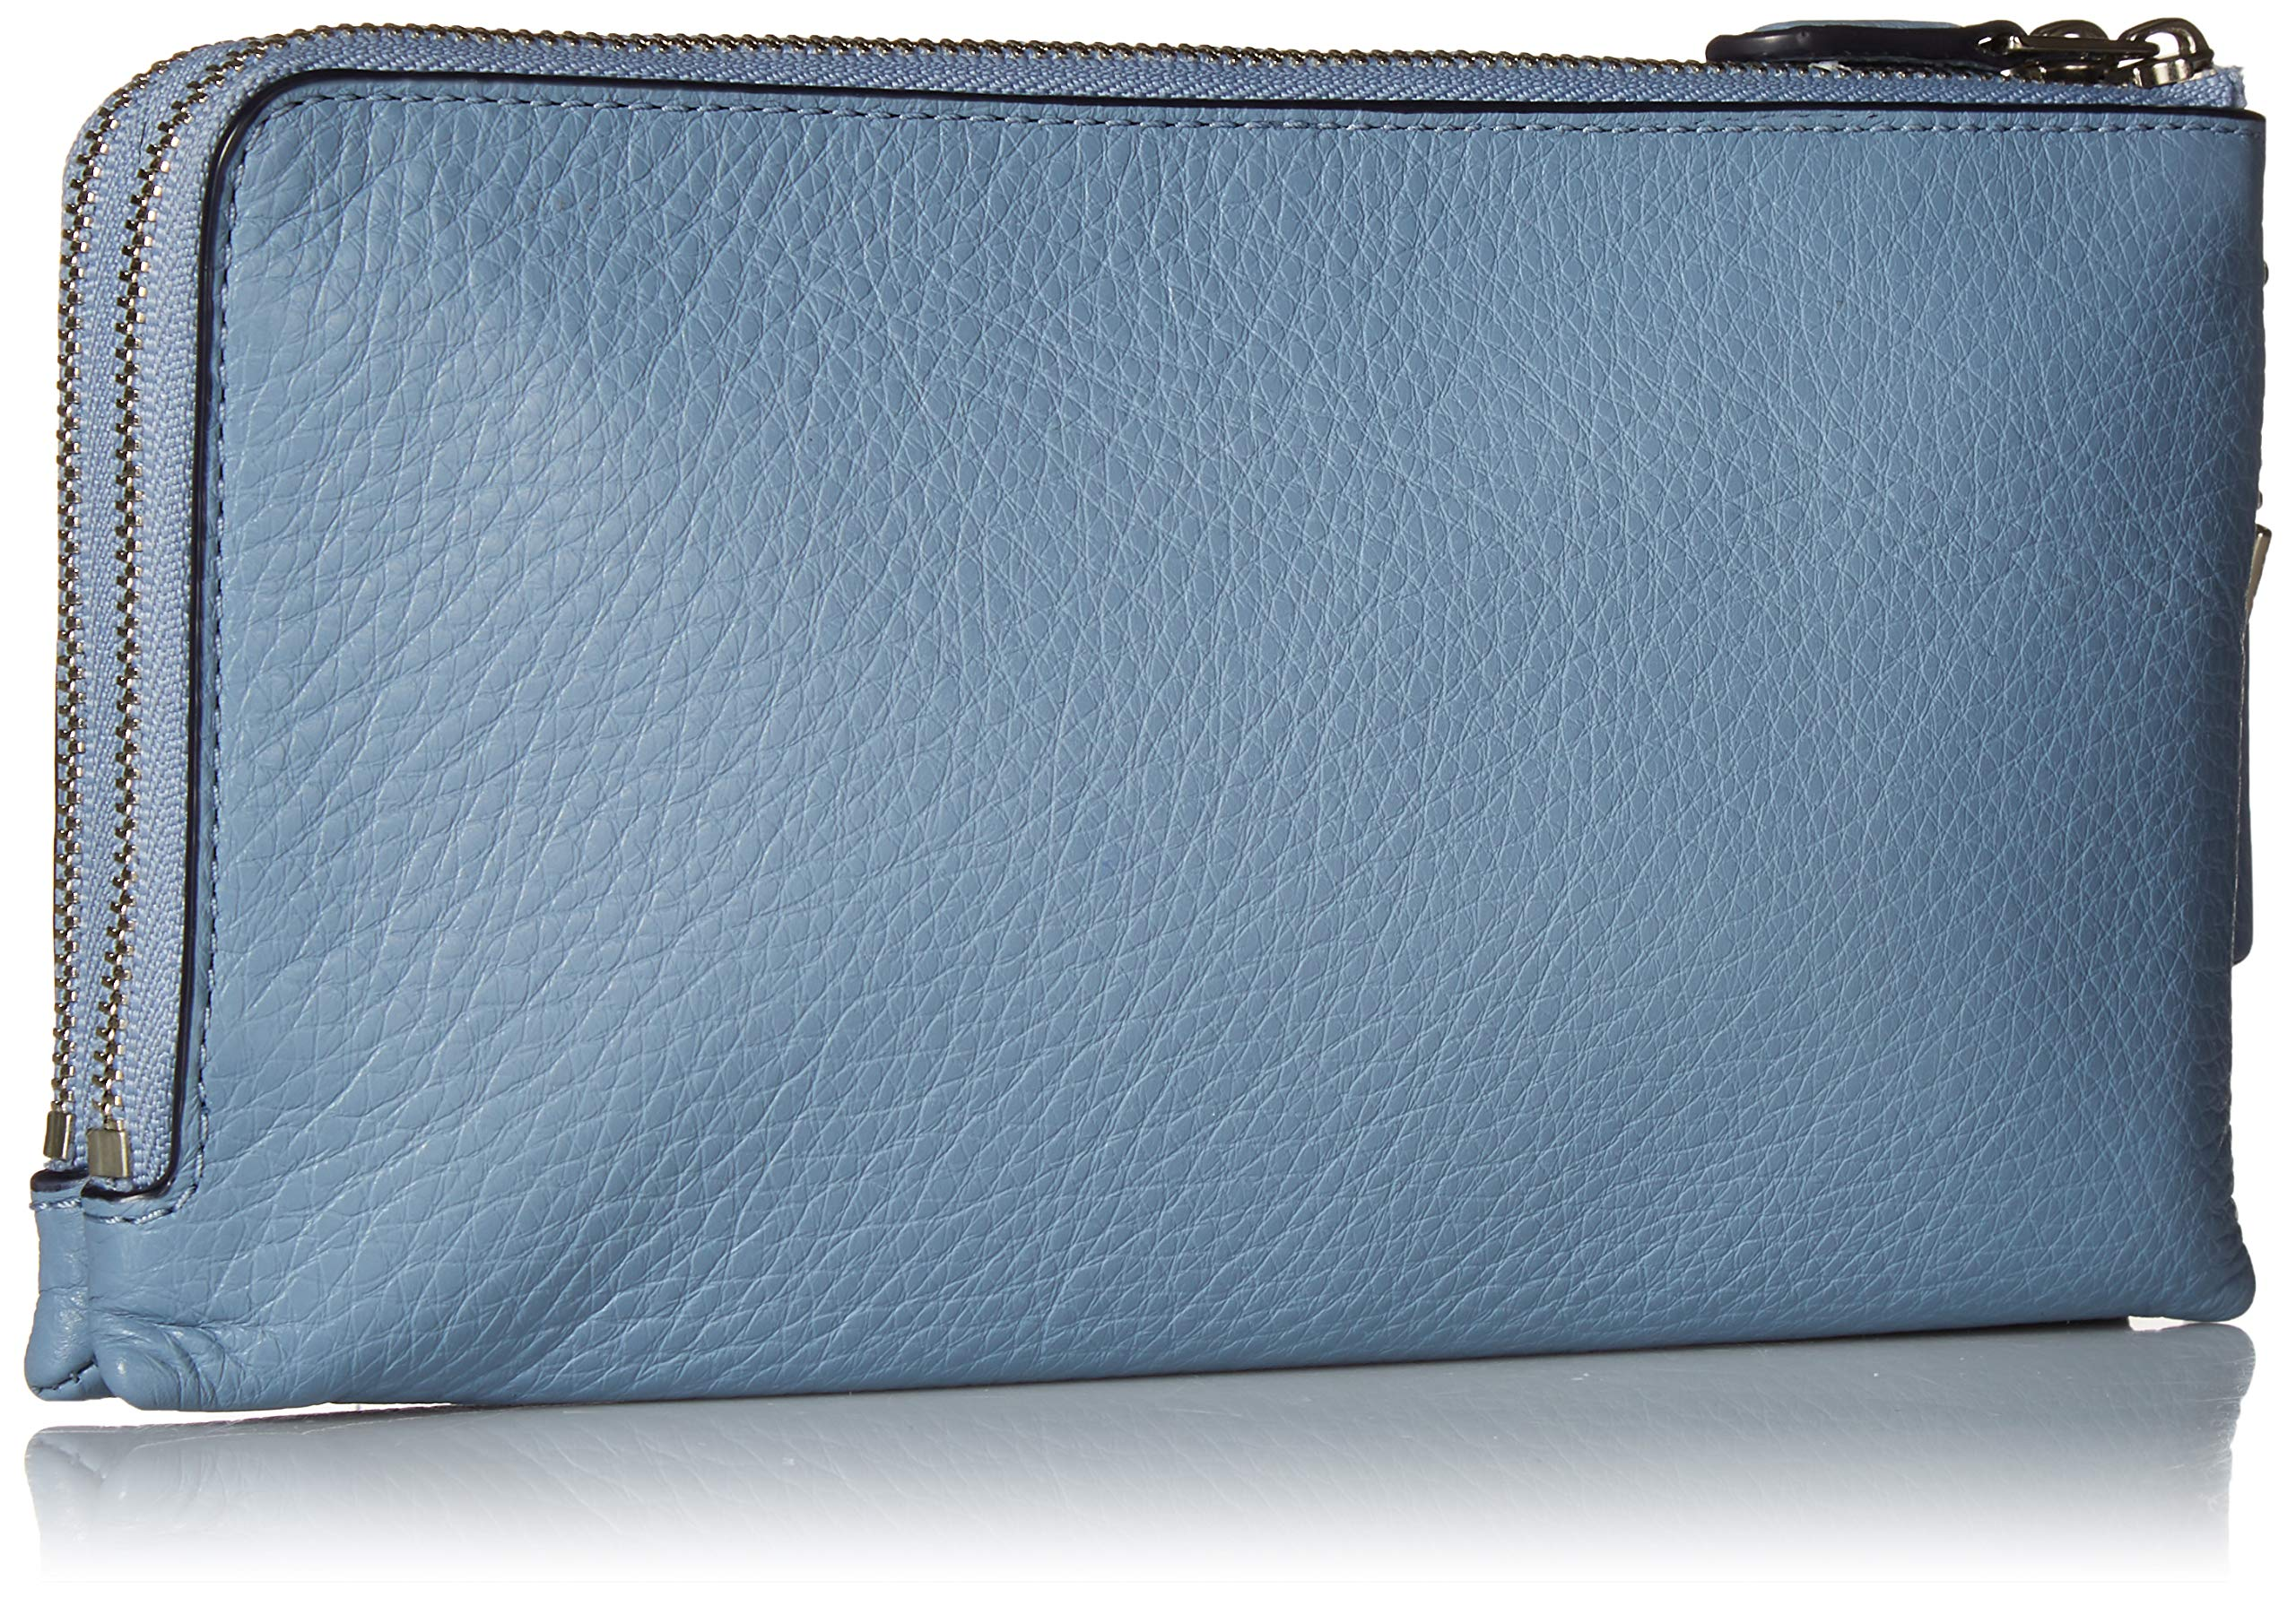 COACH Women's Pebbled Leather Double Zip Wallet Sv/Pool One Size